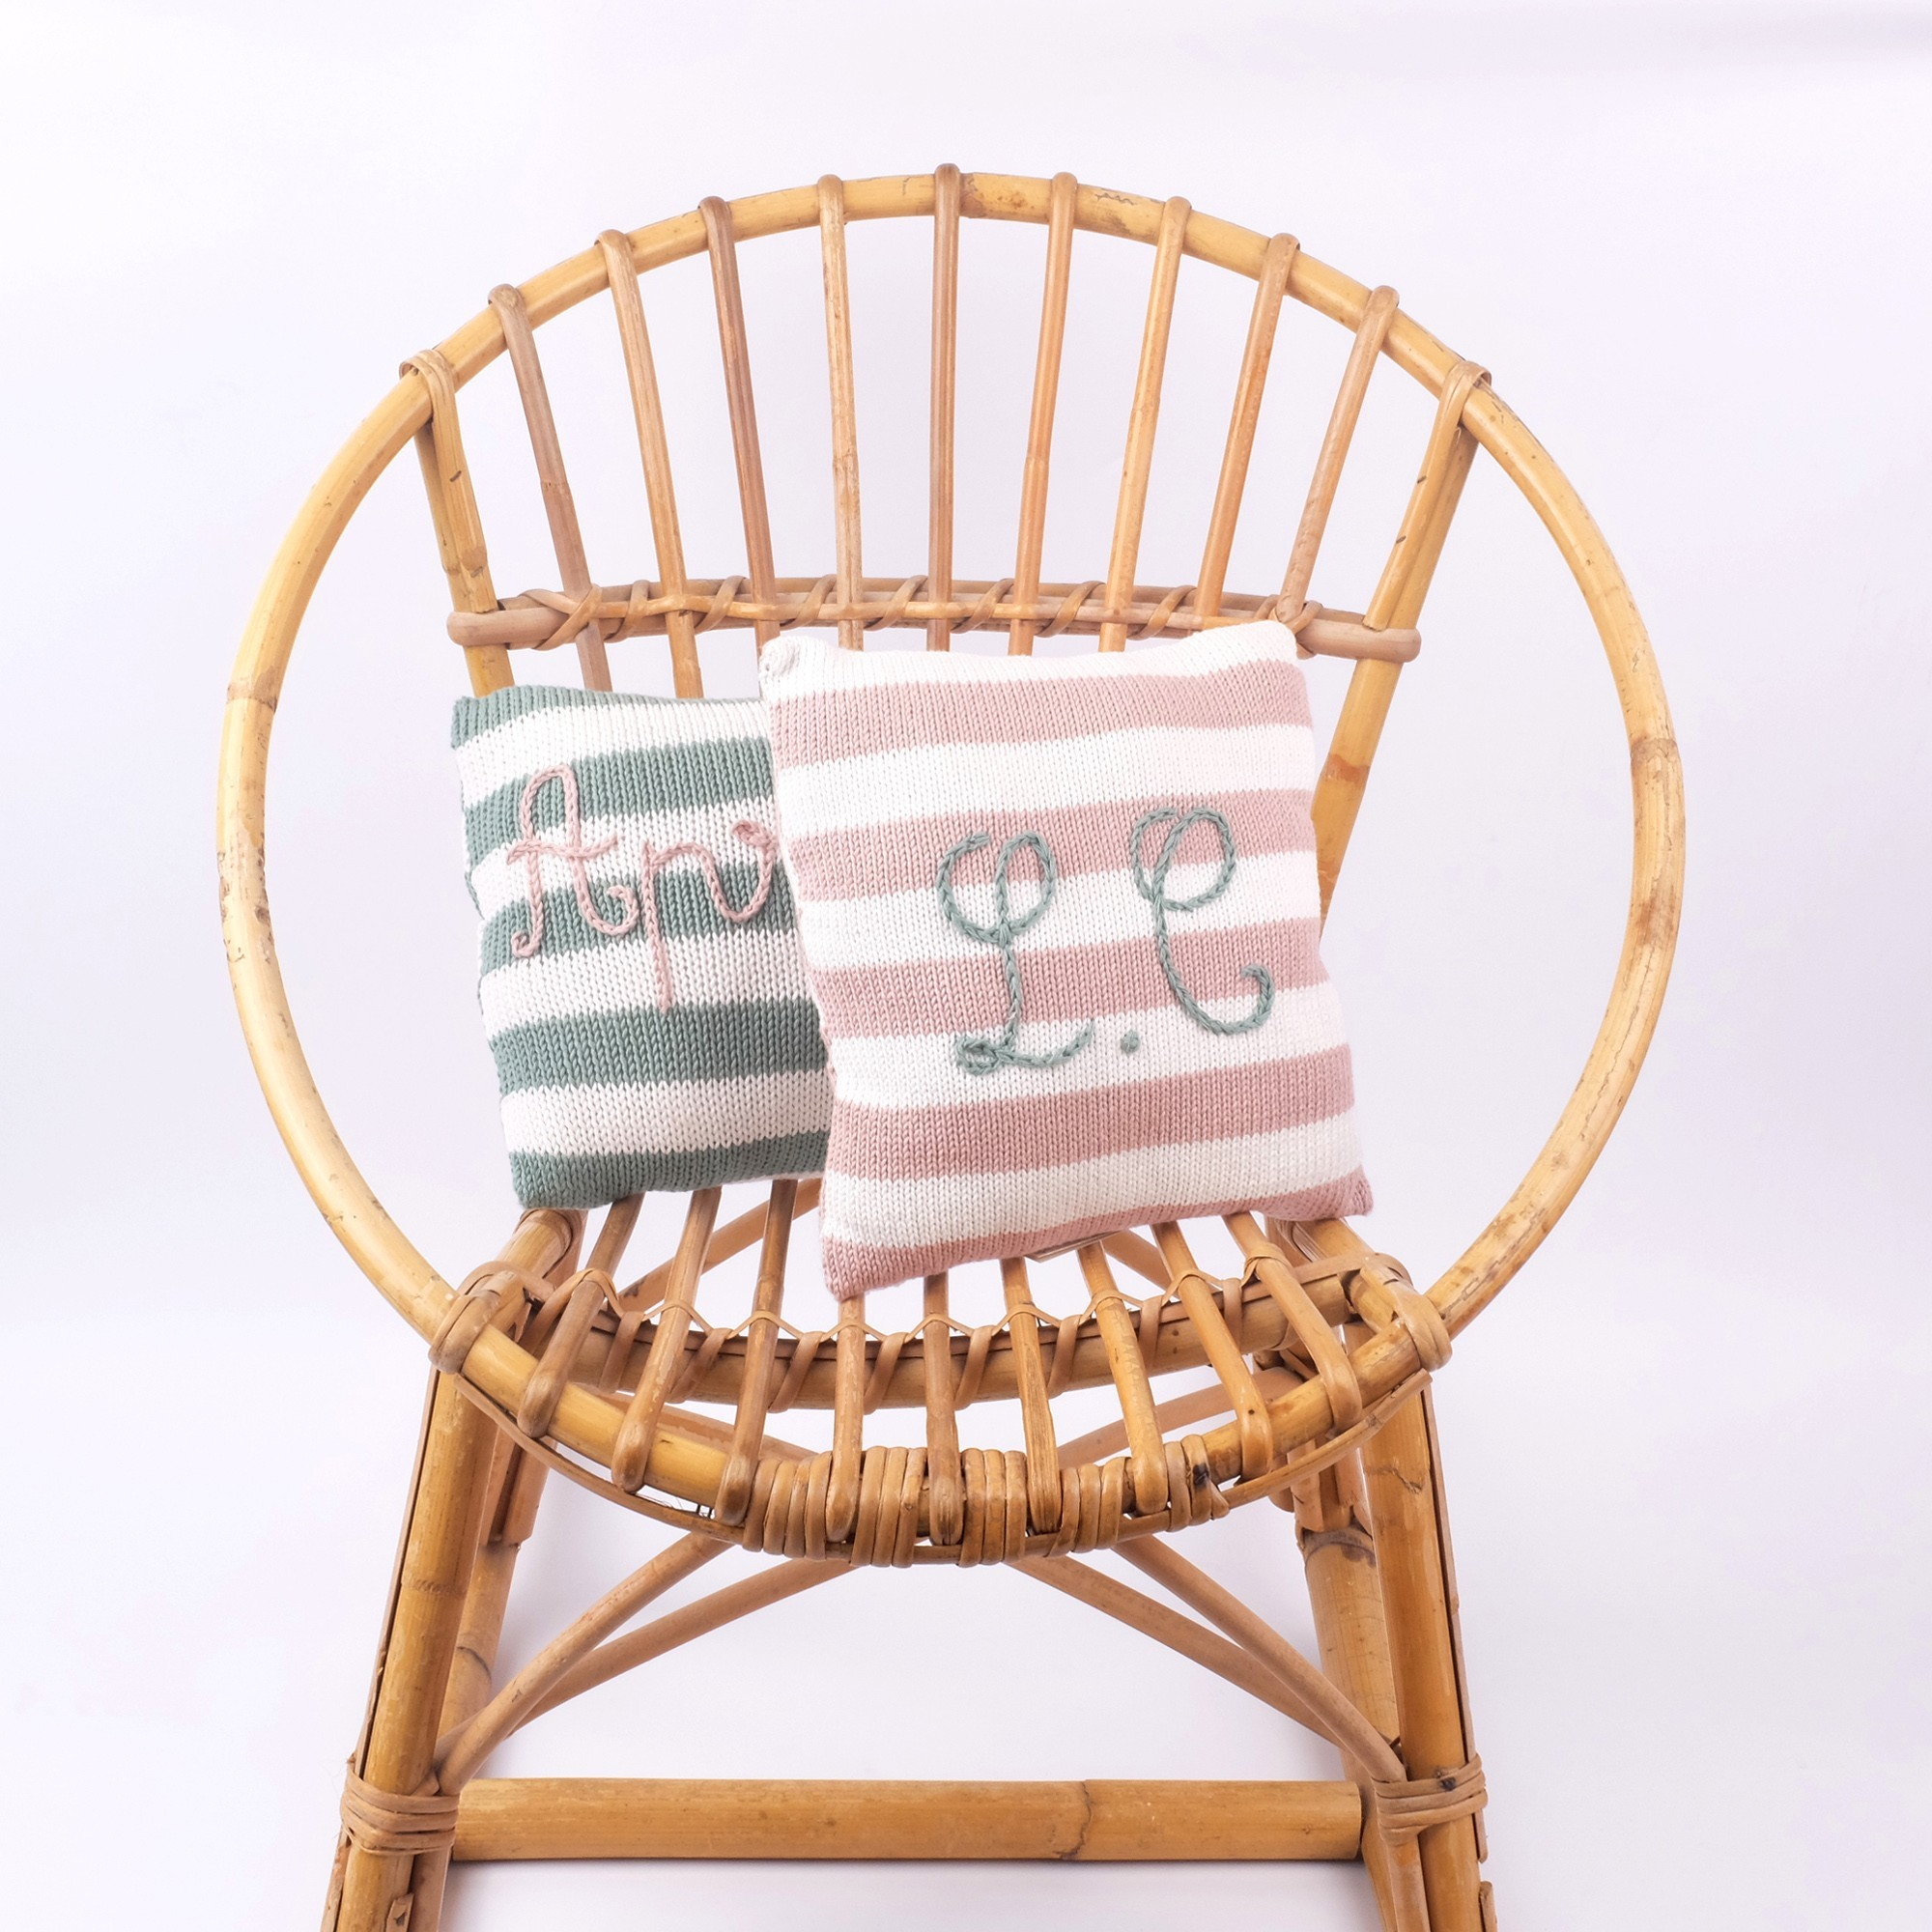 Mini customizable cushions - pink striped and almond green striped